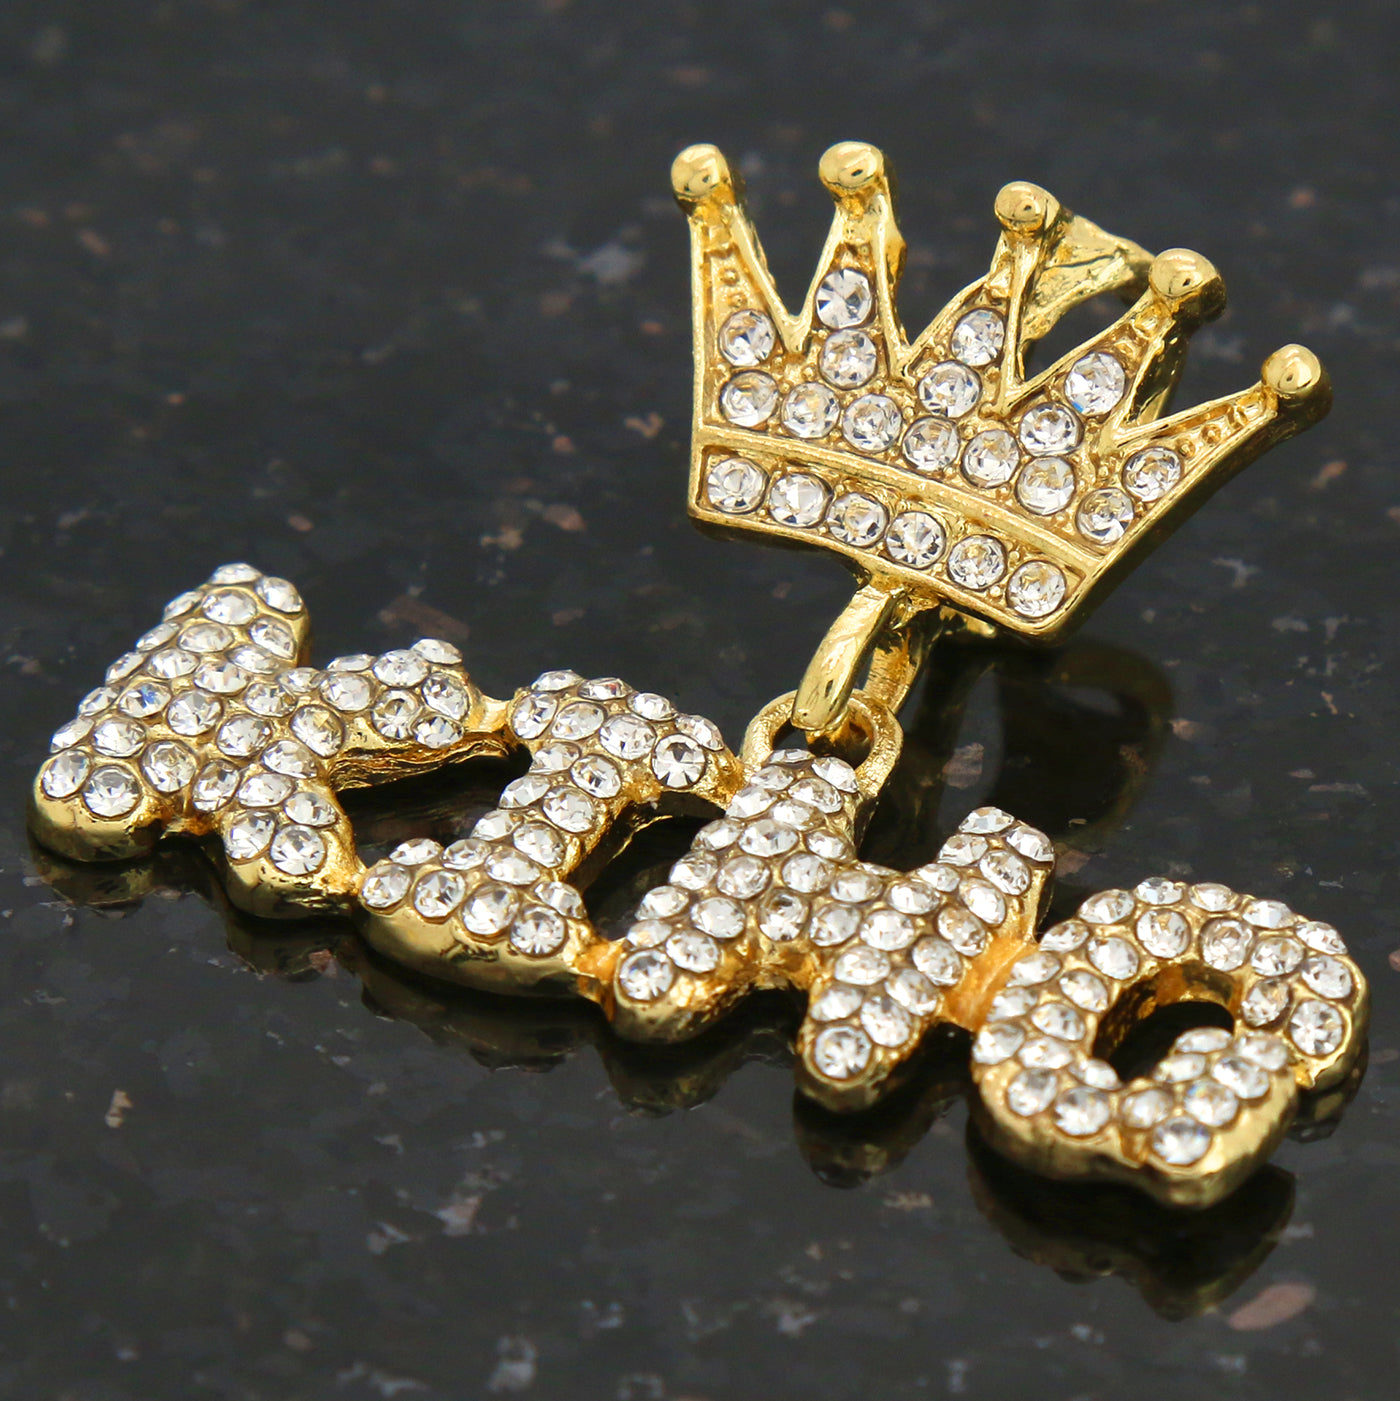 GOLD KING CROWN ICED